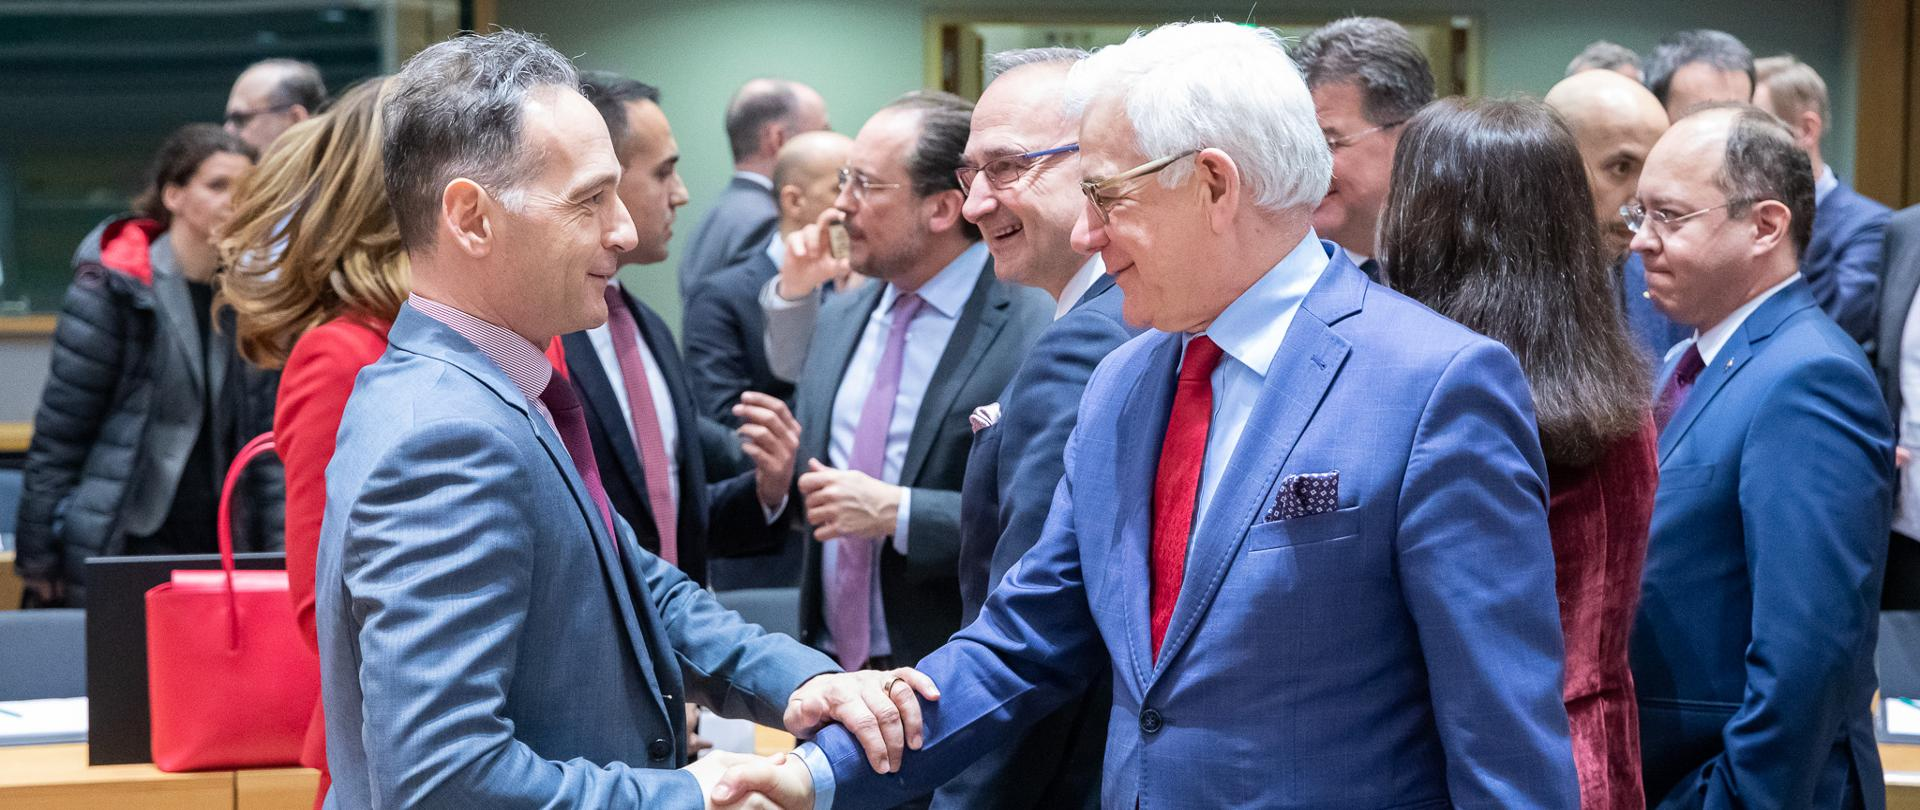 Minister Jacek Czaputowicz attends extraordinary Foreign Affairs Council meeting